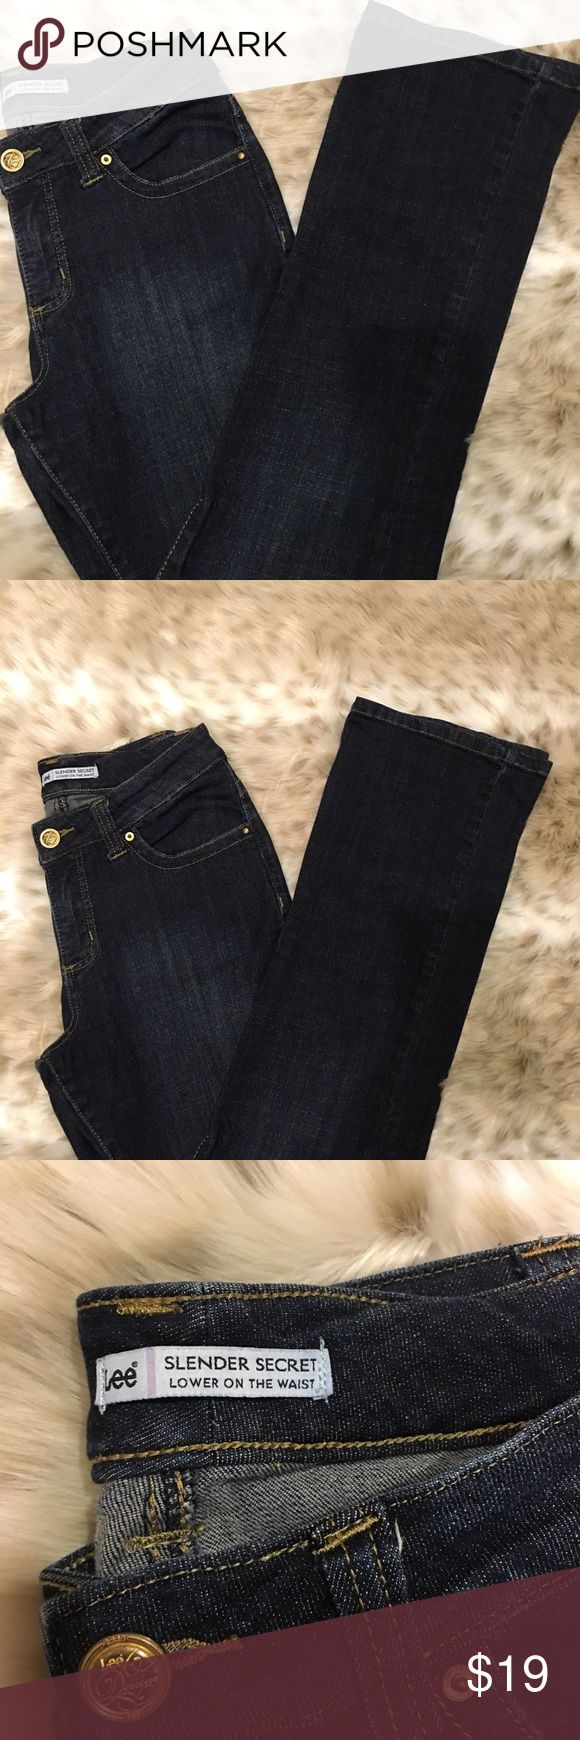 Lee Jeans for adult brand new condition with out tags Lee Jeans Lee Jeans Ankle & Cropped